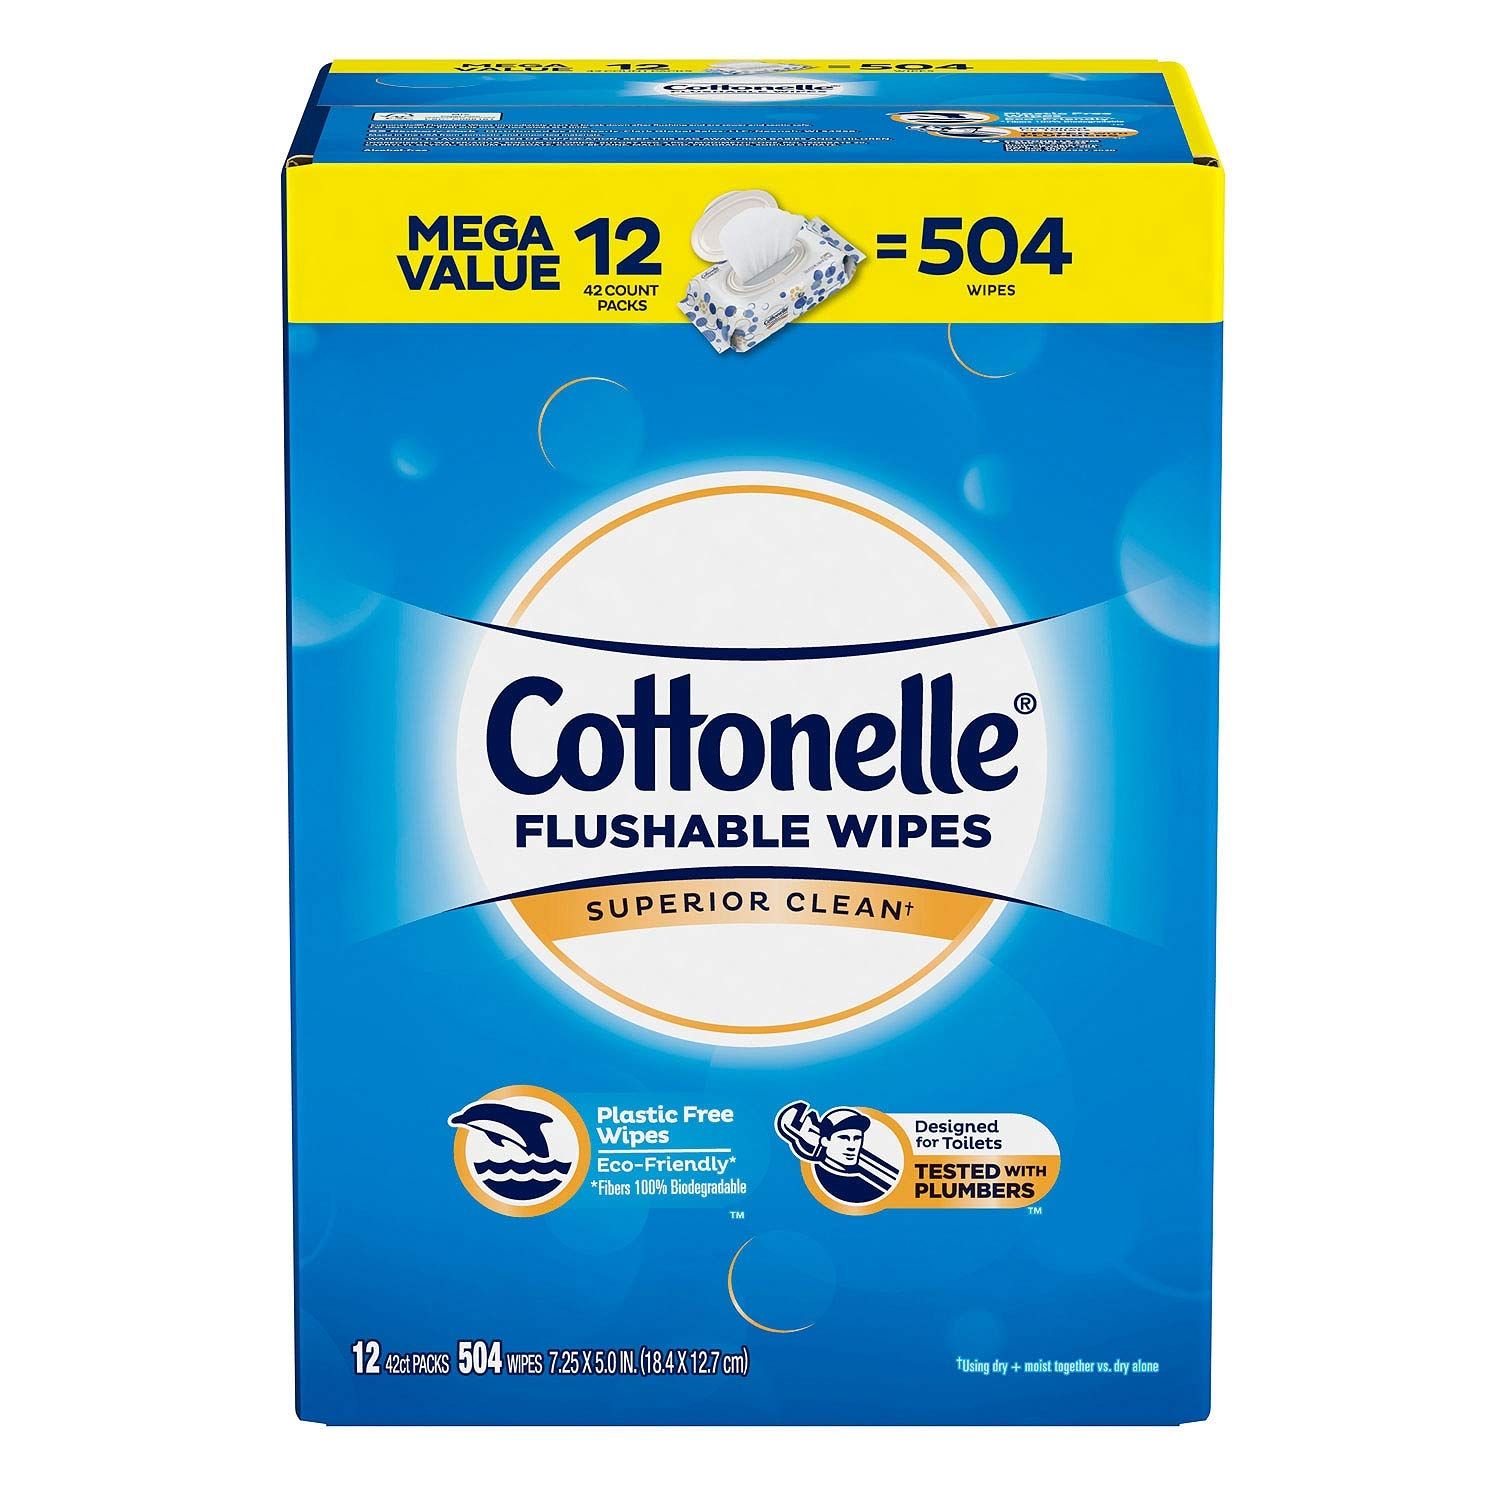 Cottonelle Fresh Care Flushable Cleansing Cloth, 504 Count (2-Pack(504 Count)) by Cottonelle